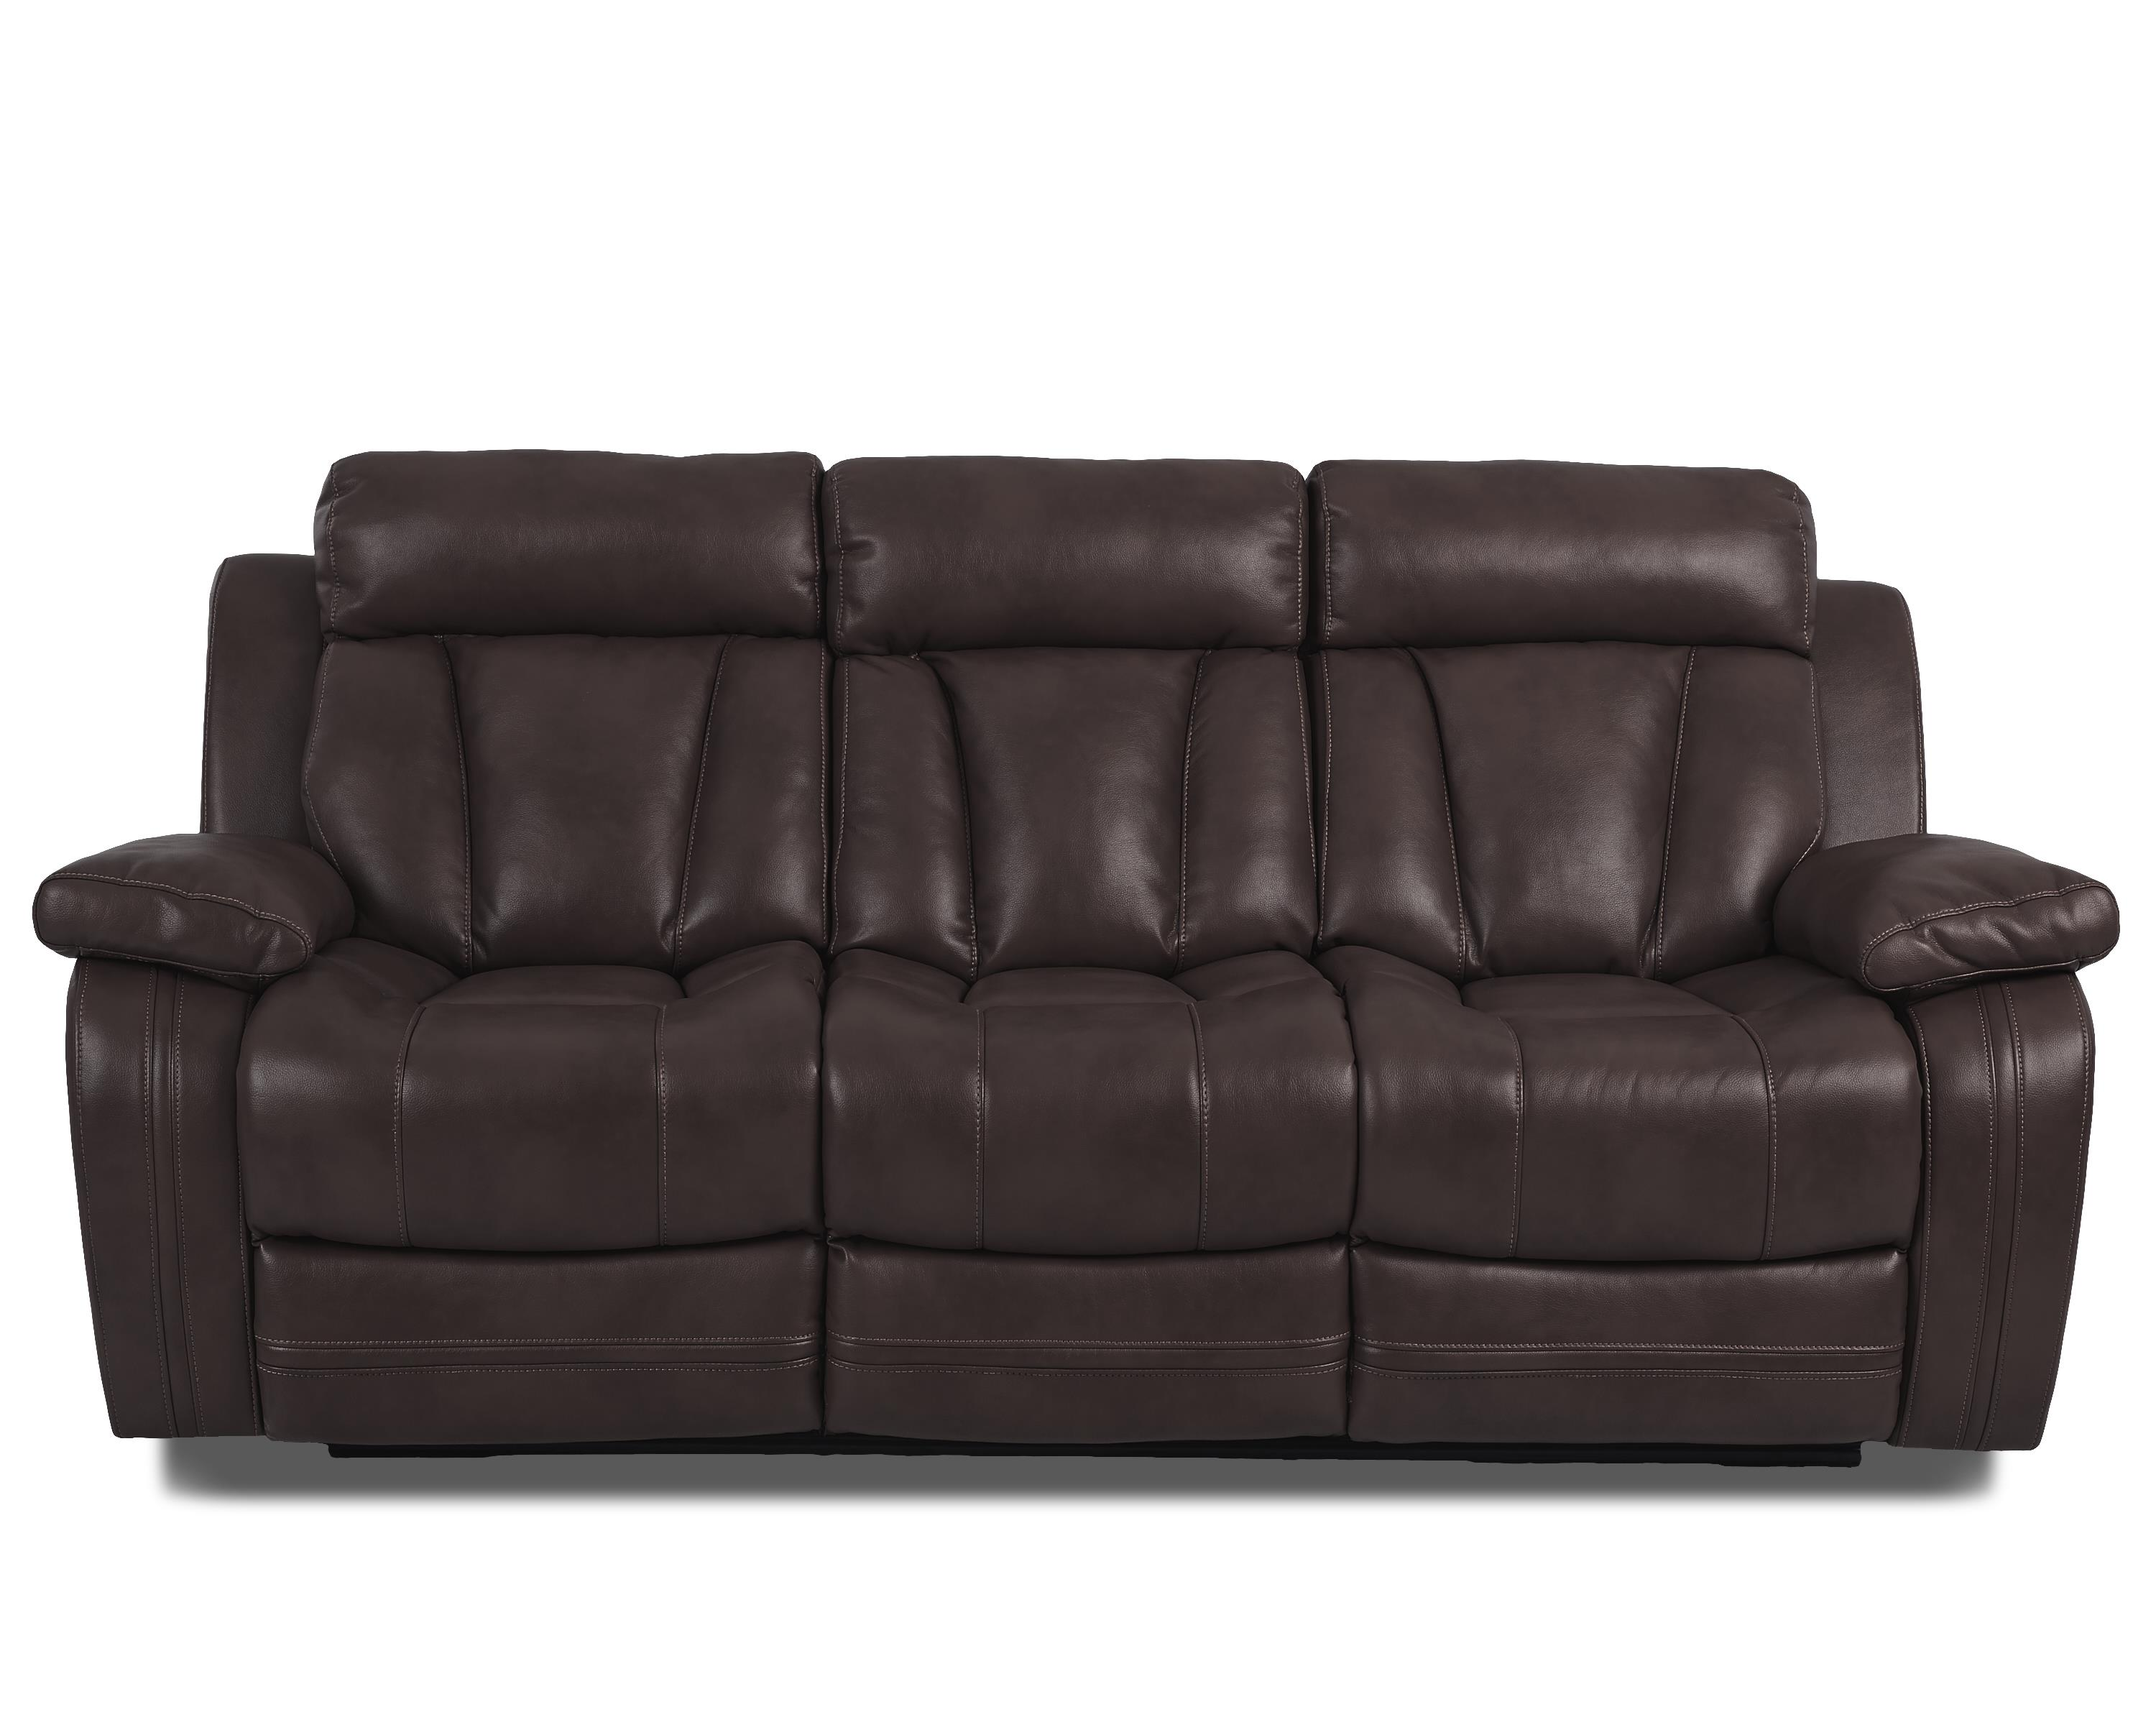 Power Reclining Sofa With Table